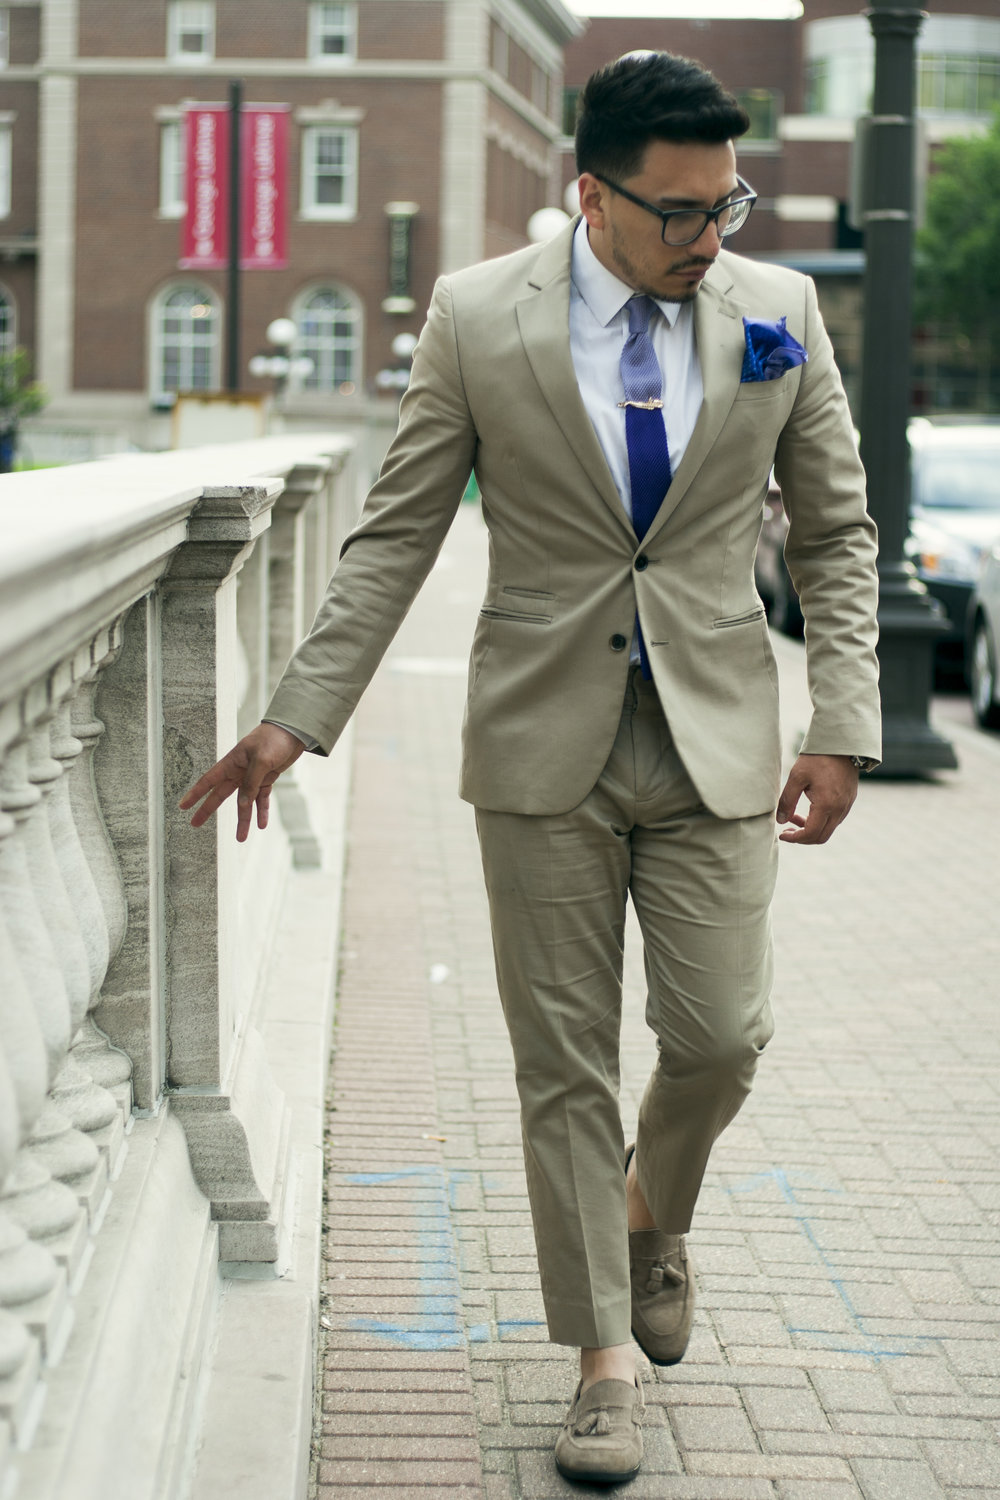 Khaki Suit for summer wedding